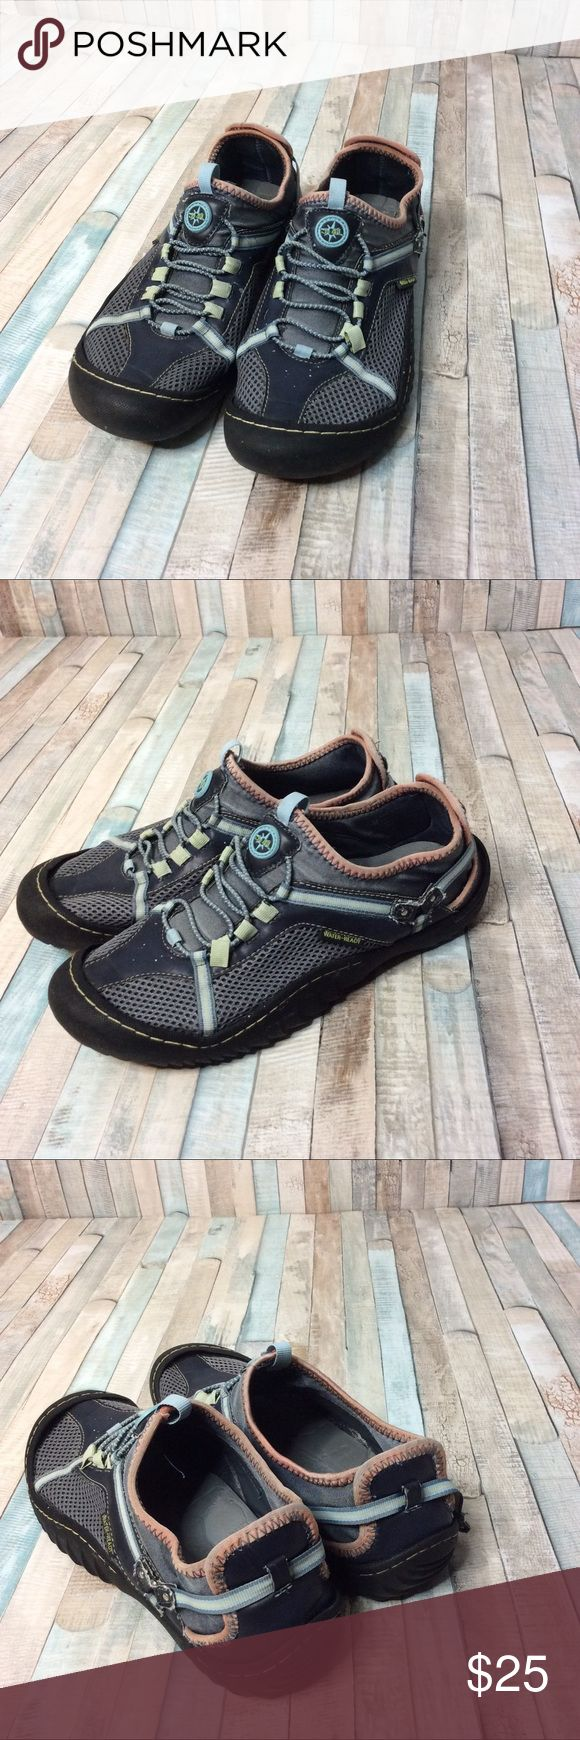 J-41 JEEP Engineered Traction Sole Water Shoes Water Ready! Some minor wear, strap is broken on the right shoes and probably could be fixed. Very Small tear on the inside of the right shoe. Overall, shoes are in great condition and very comfortable. Gently used. Size 9 Shoes